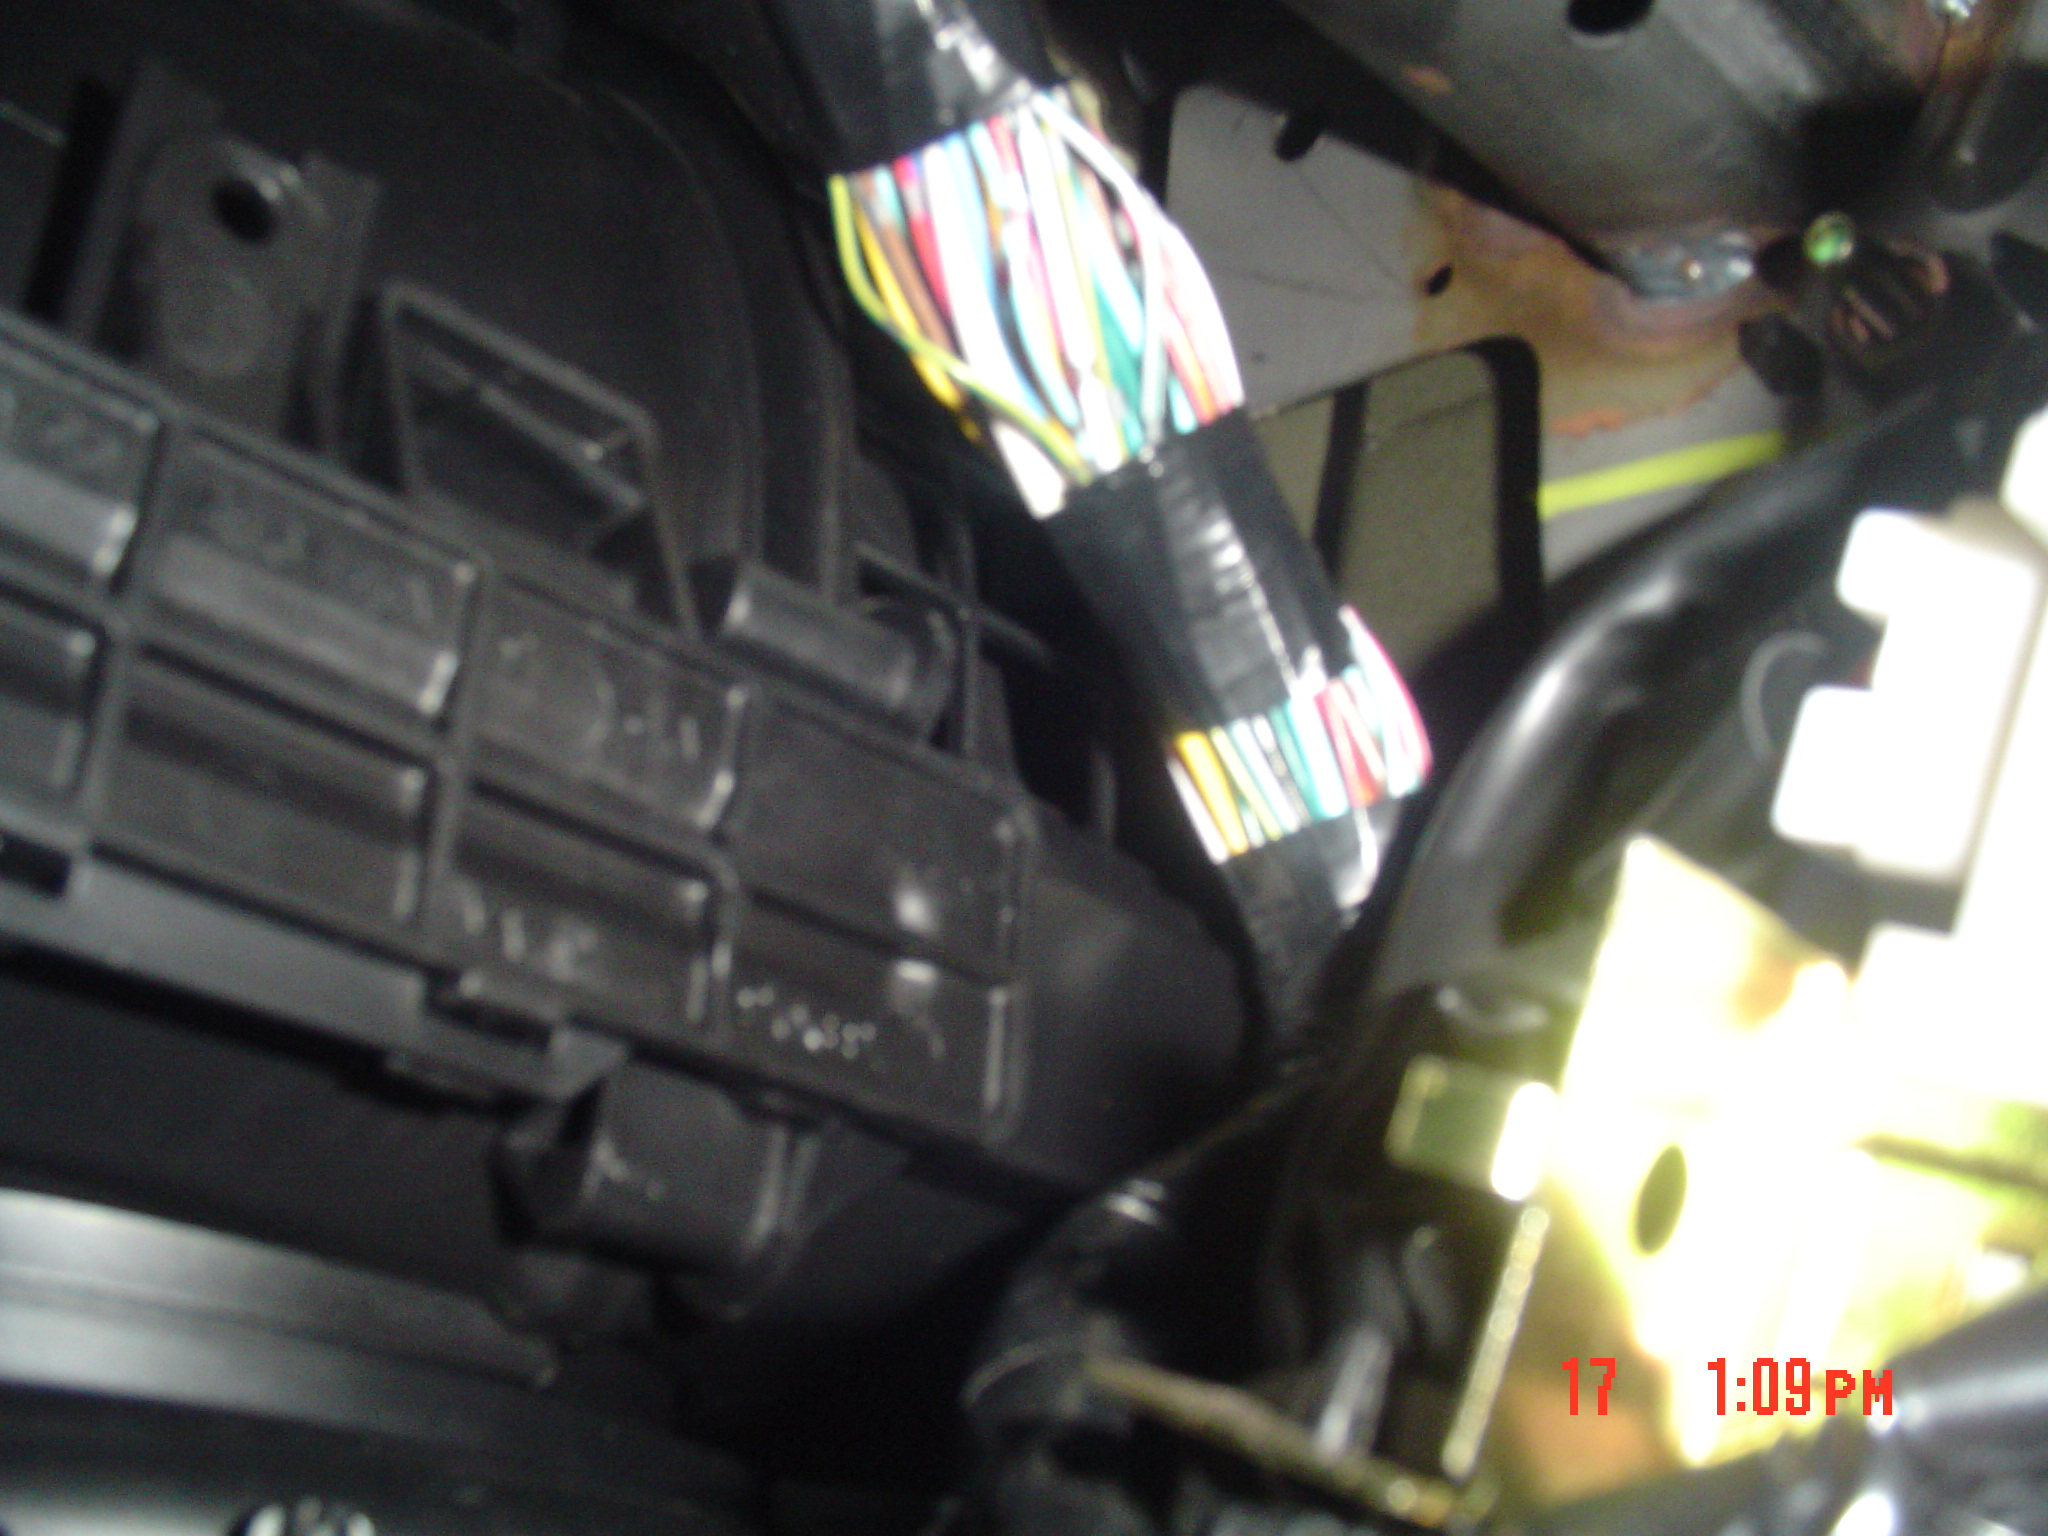 Found Reverse light wire in Cab | Nissan Frontier Forum on xterra supercharger kit, xterra engine swap, xterra hood scoop, xterra light bar, xterra battery hold down, xterra fuel pump relay, xterra brake light switch, xterra fog light kit, xterra throttle position sensor, xterra dash lights,